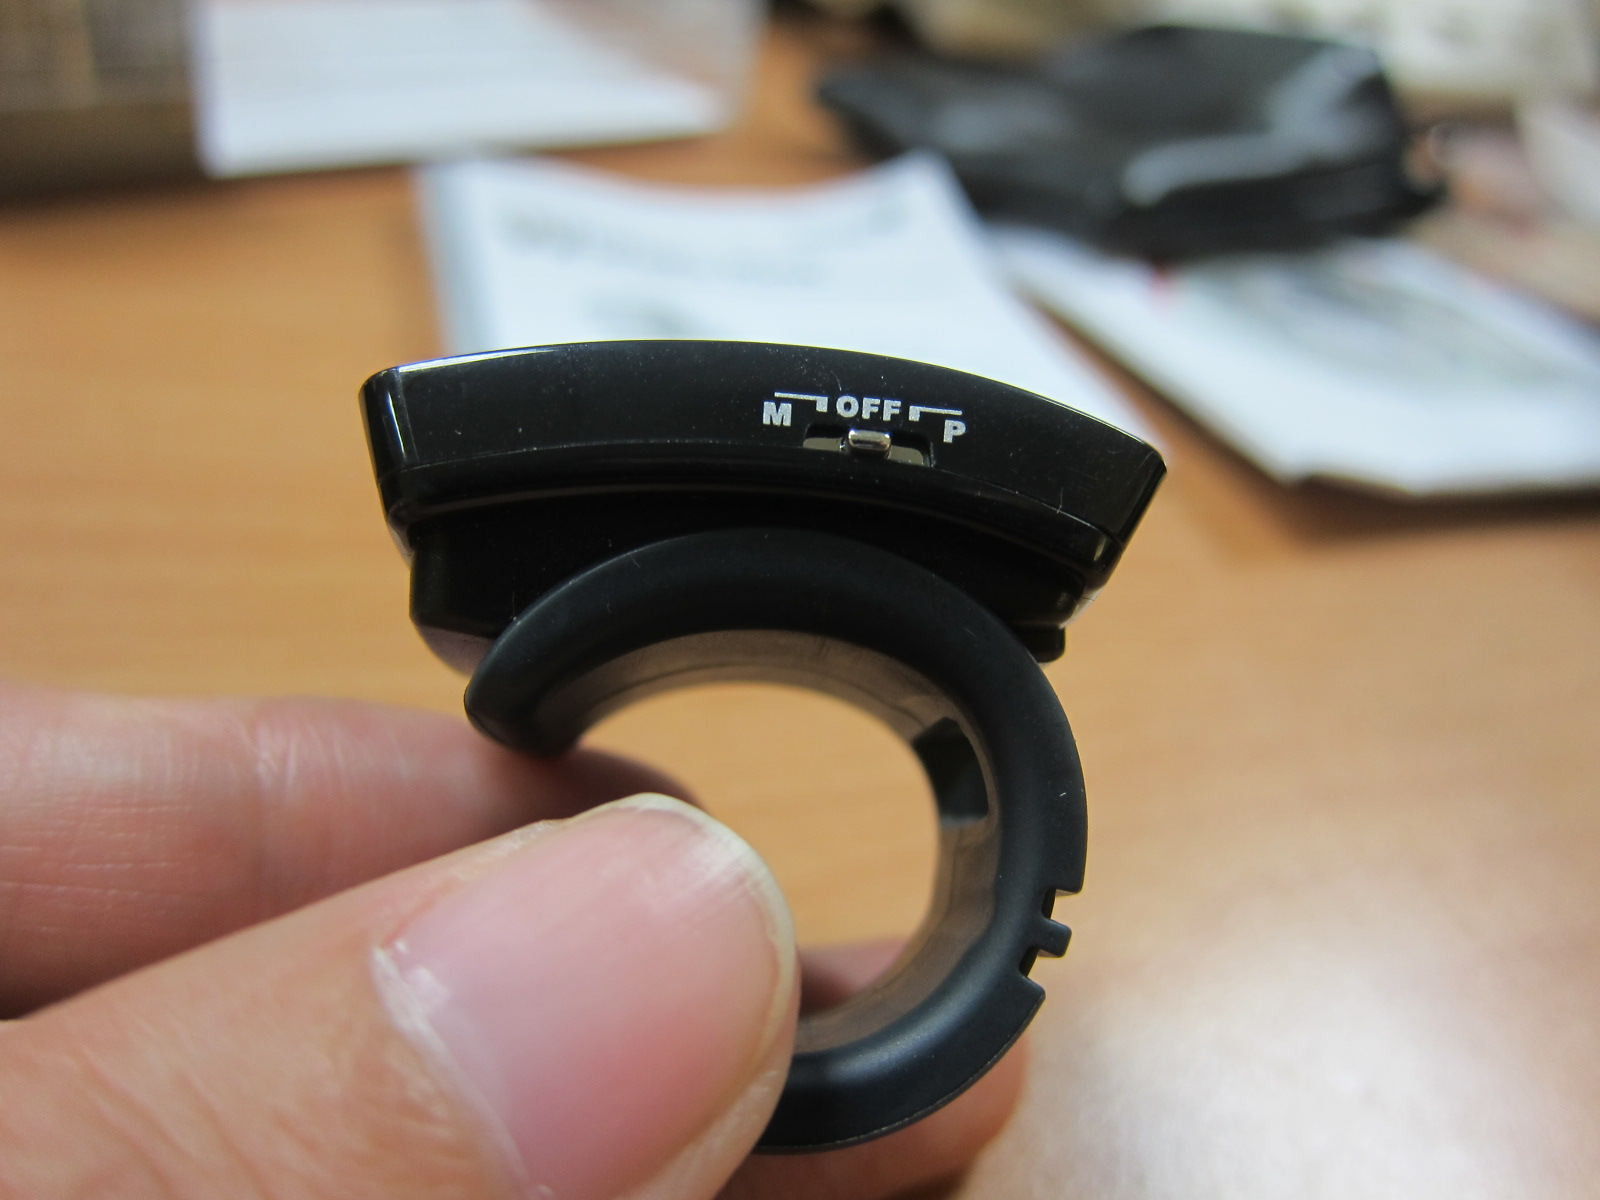 This Is the Clever Ring of Microsoft for Use